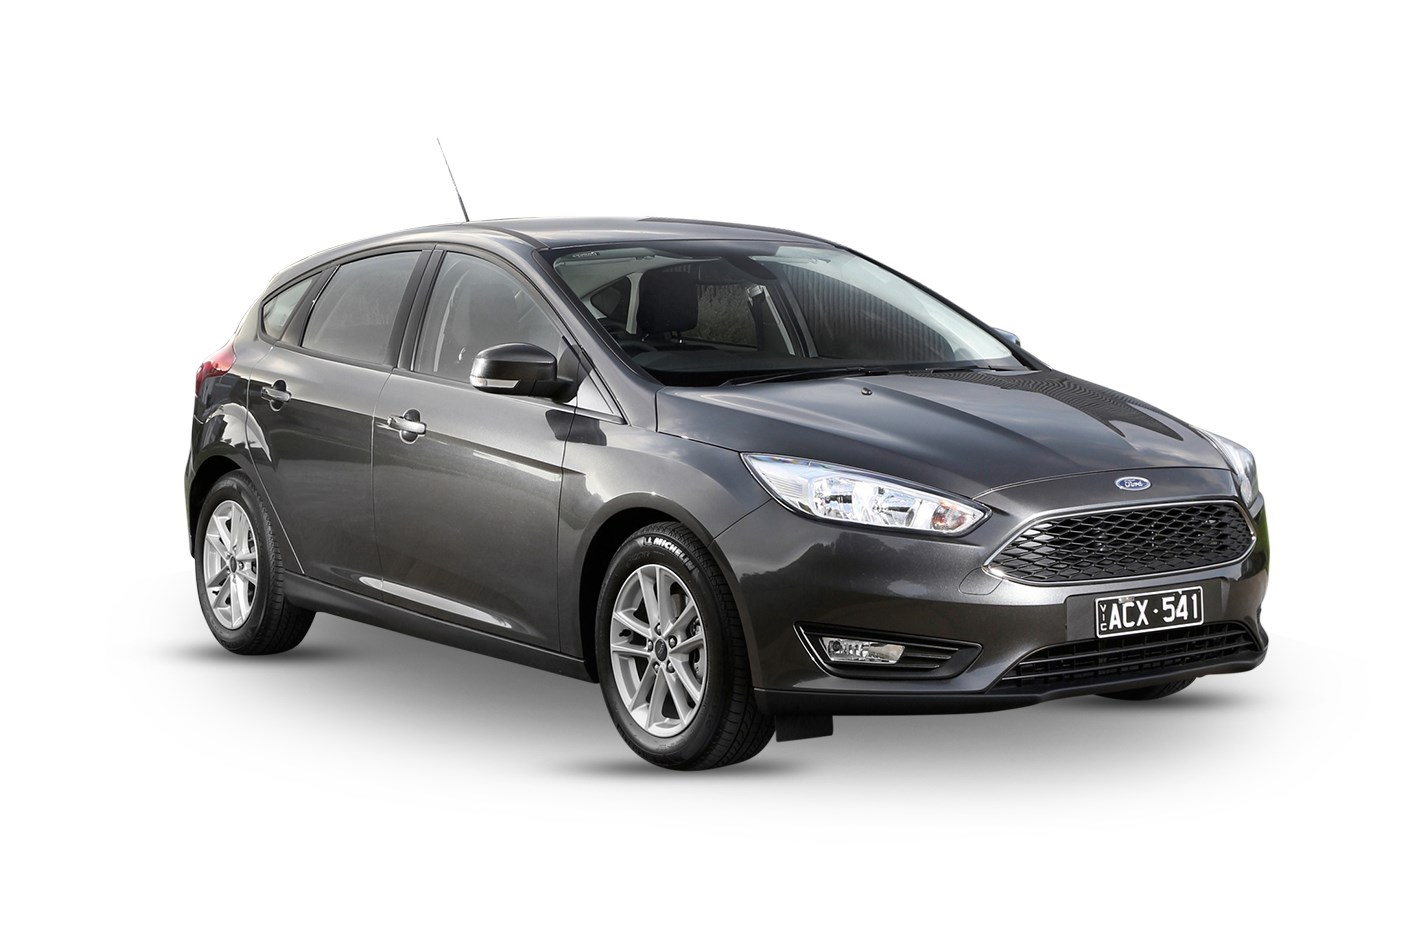 2018 ford focus trend, 1.5l 4cyl petrol turbocharged manual, hatchback